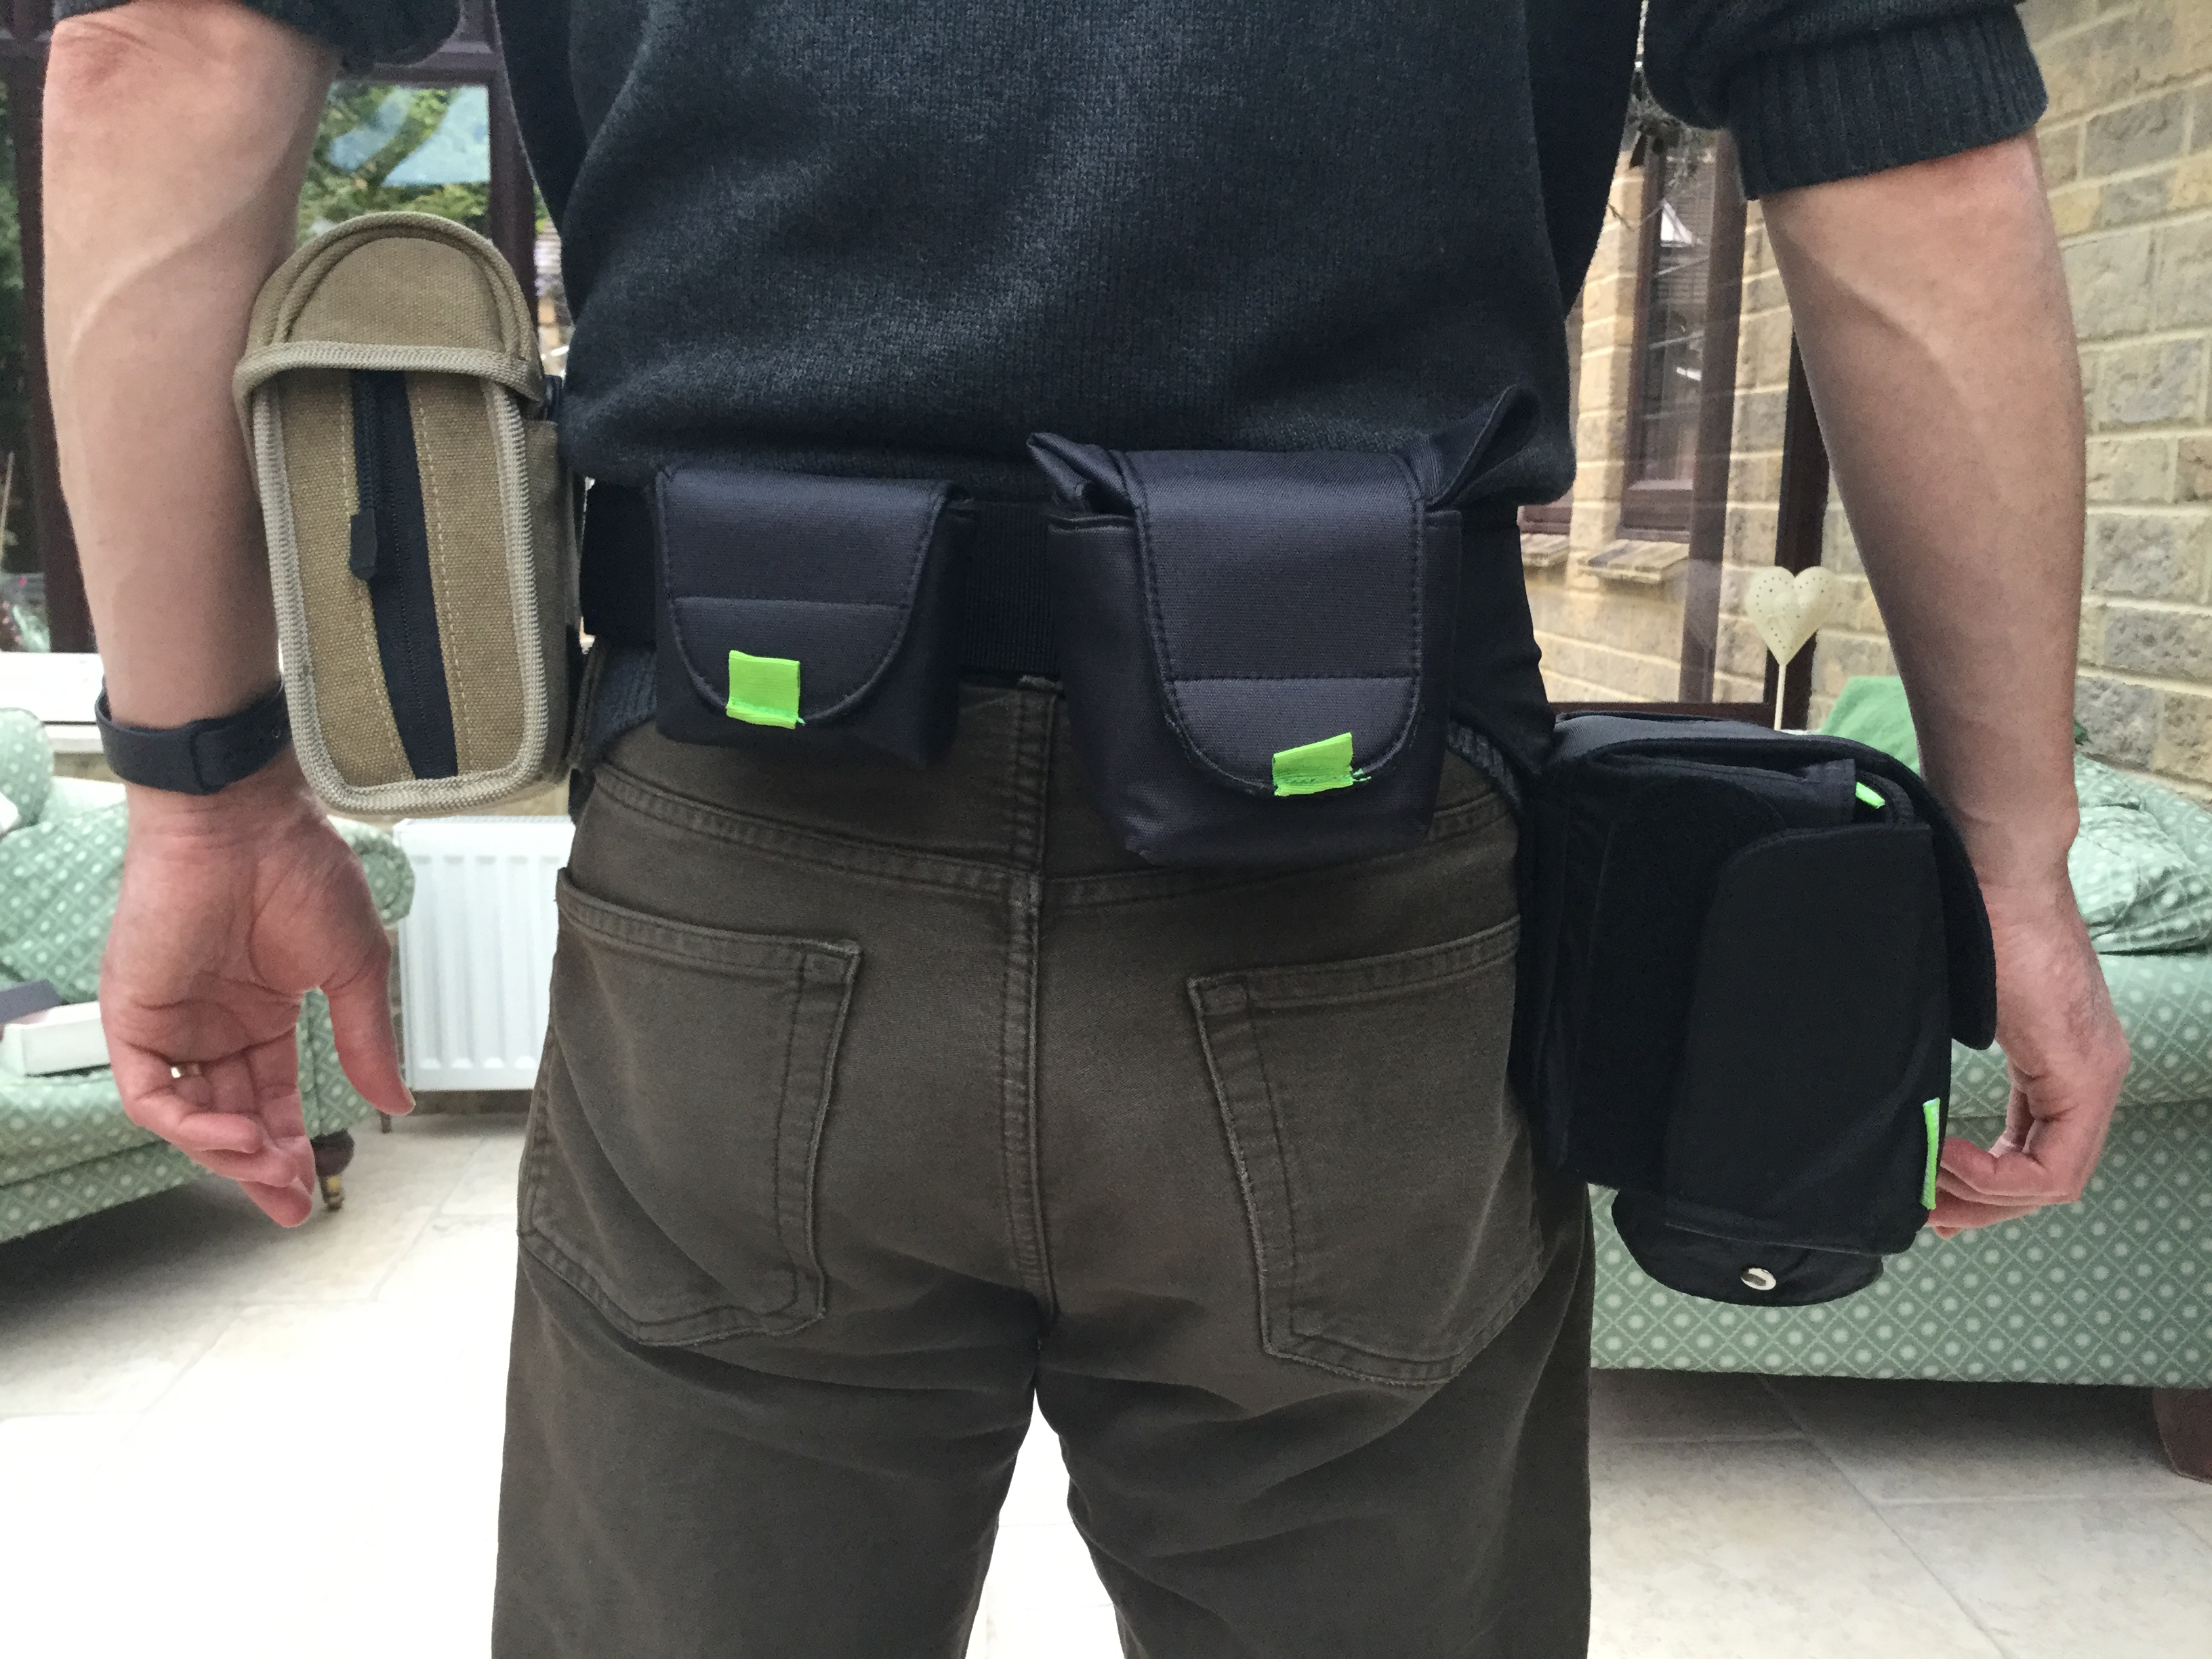 The Camslinger system puts your camera within easy reach for quick access.